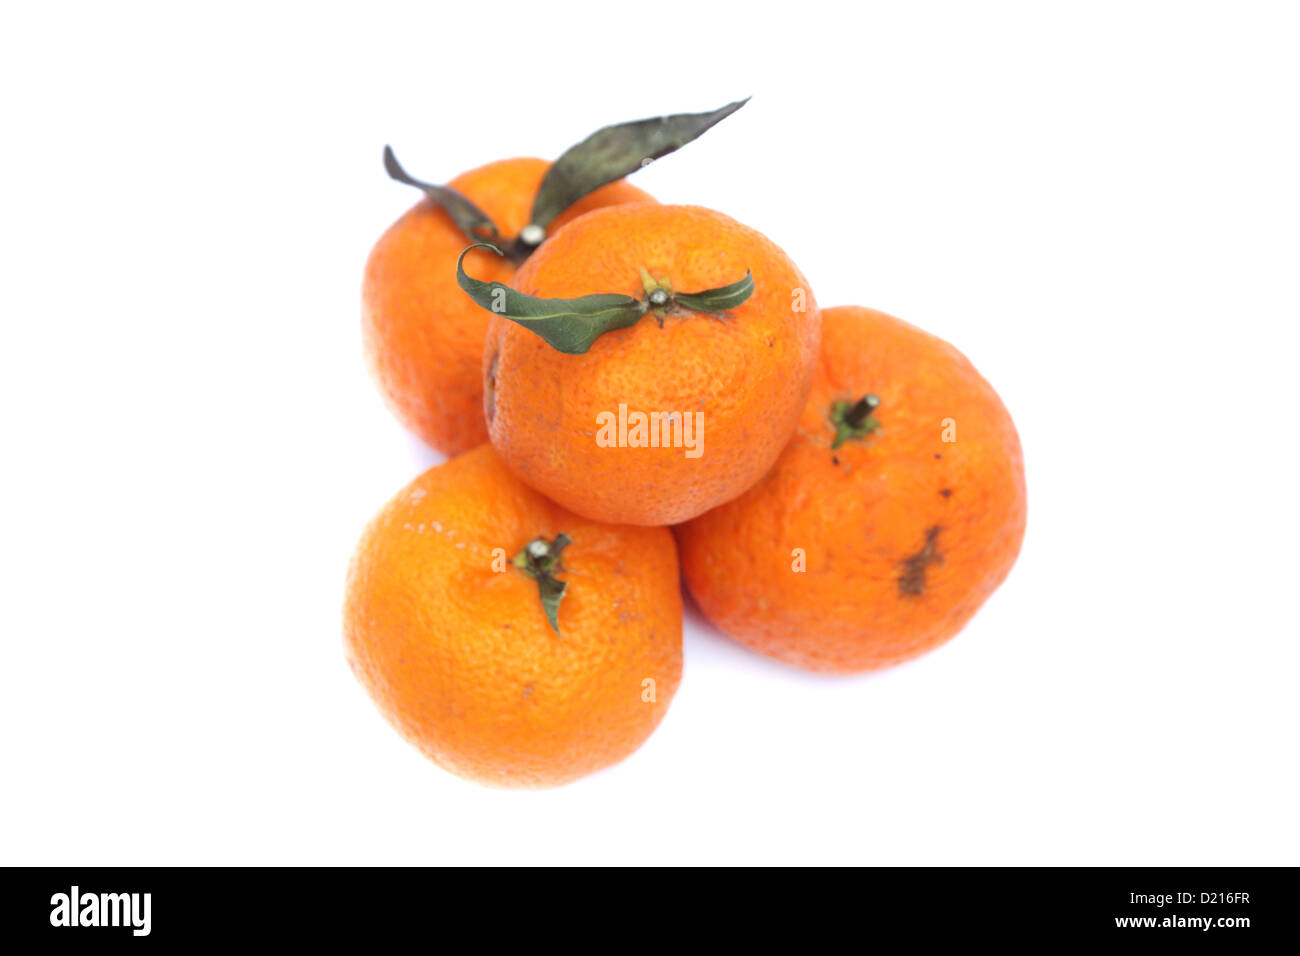 Chinese oranges - Stock Image